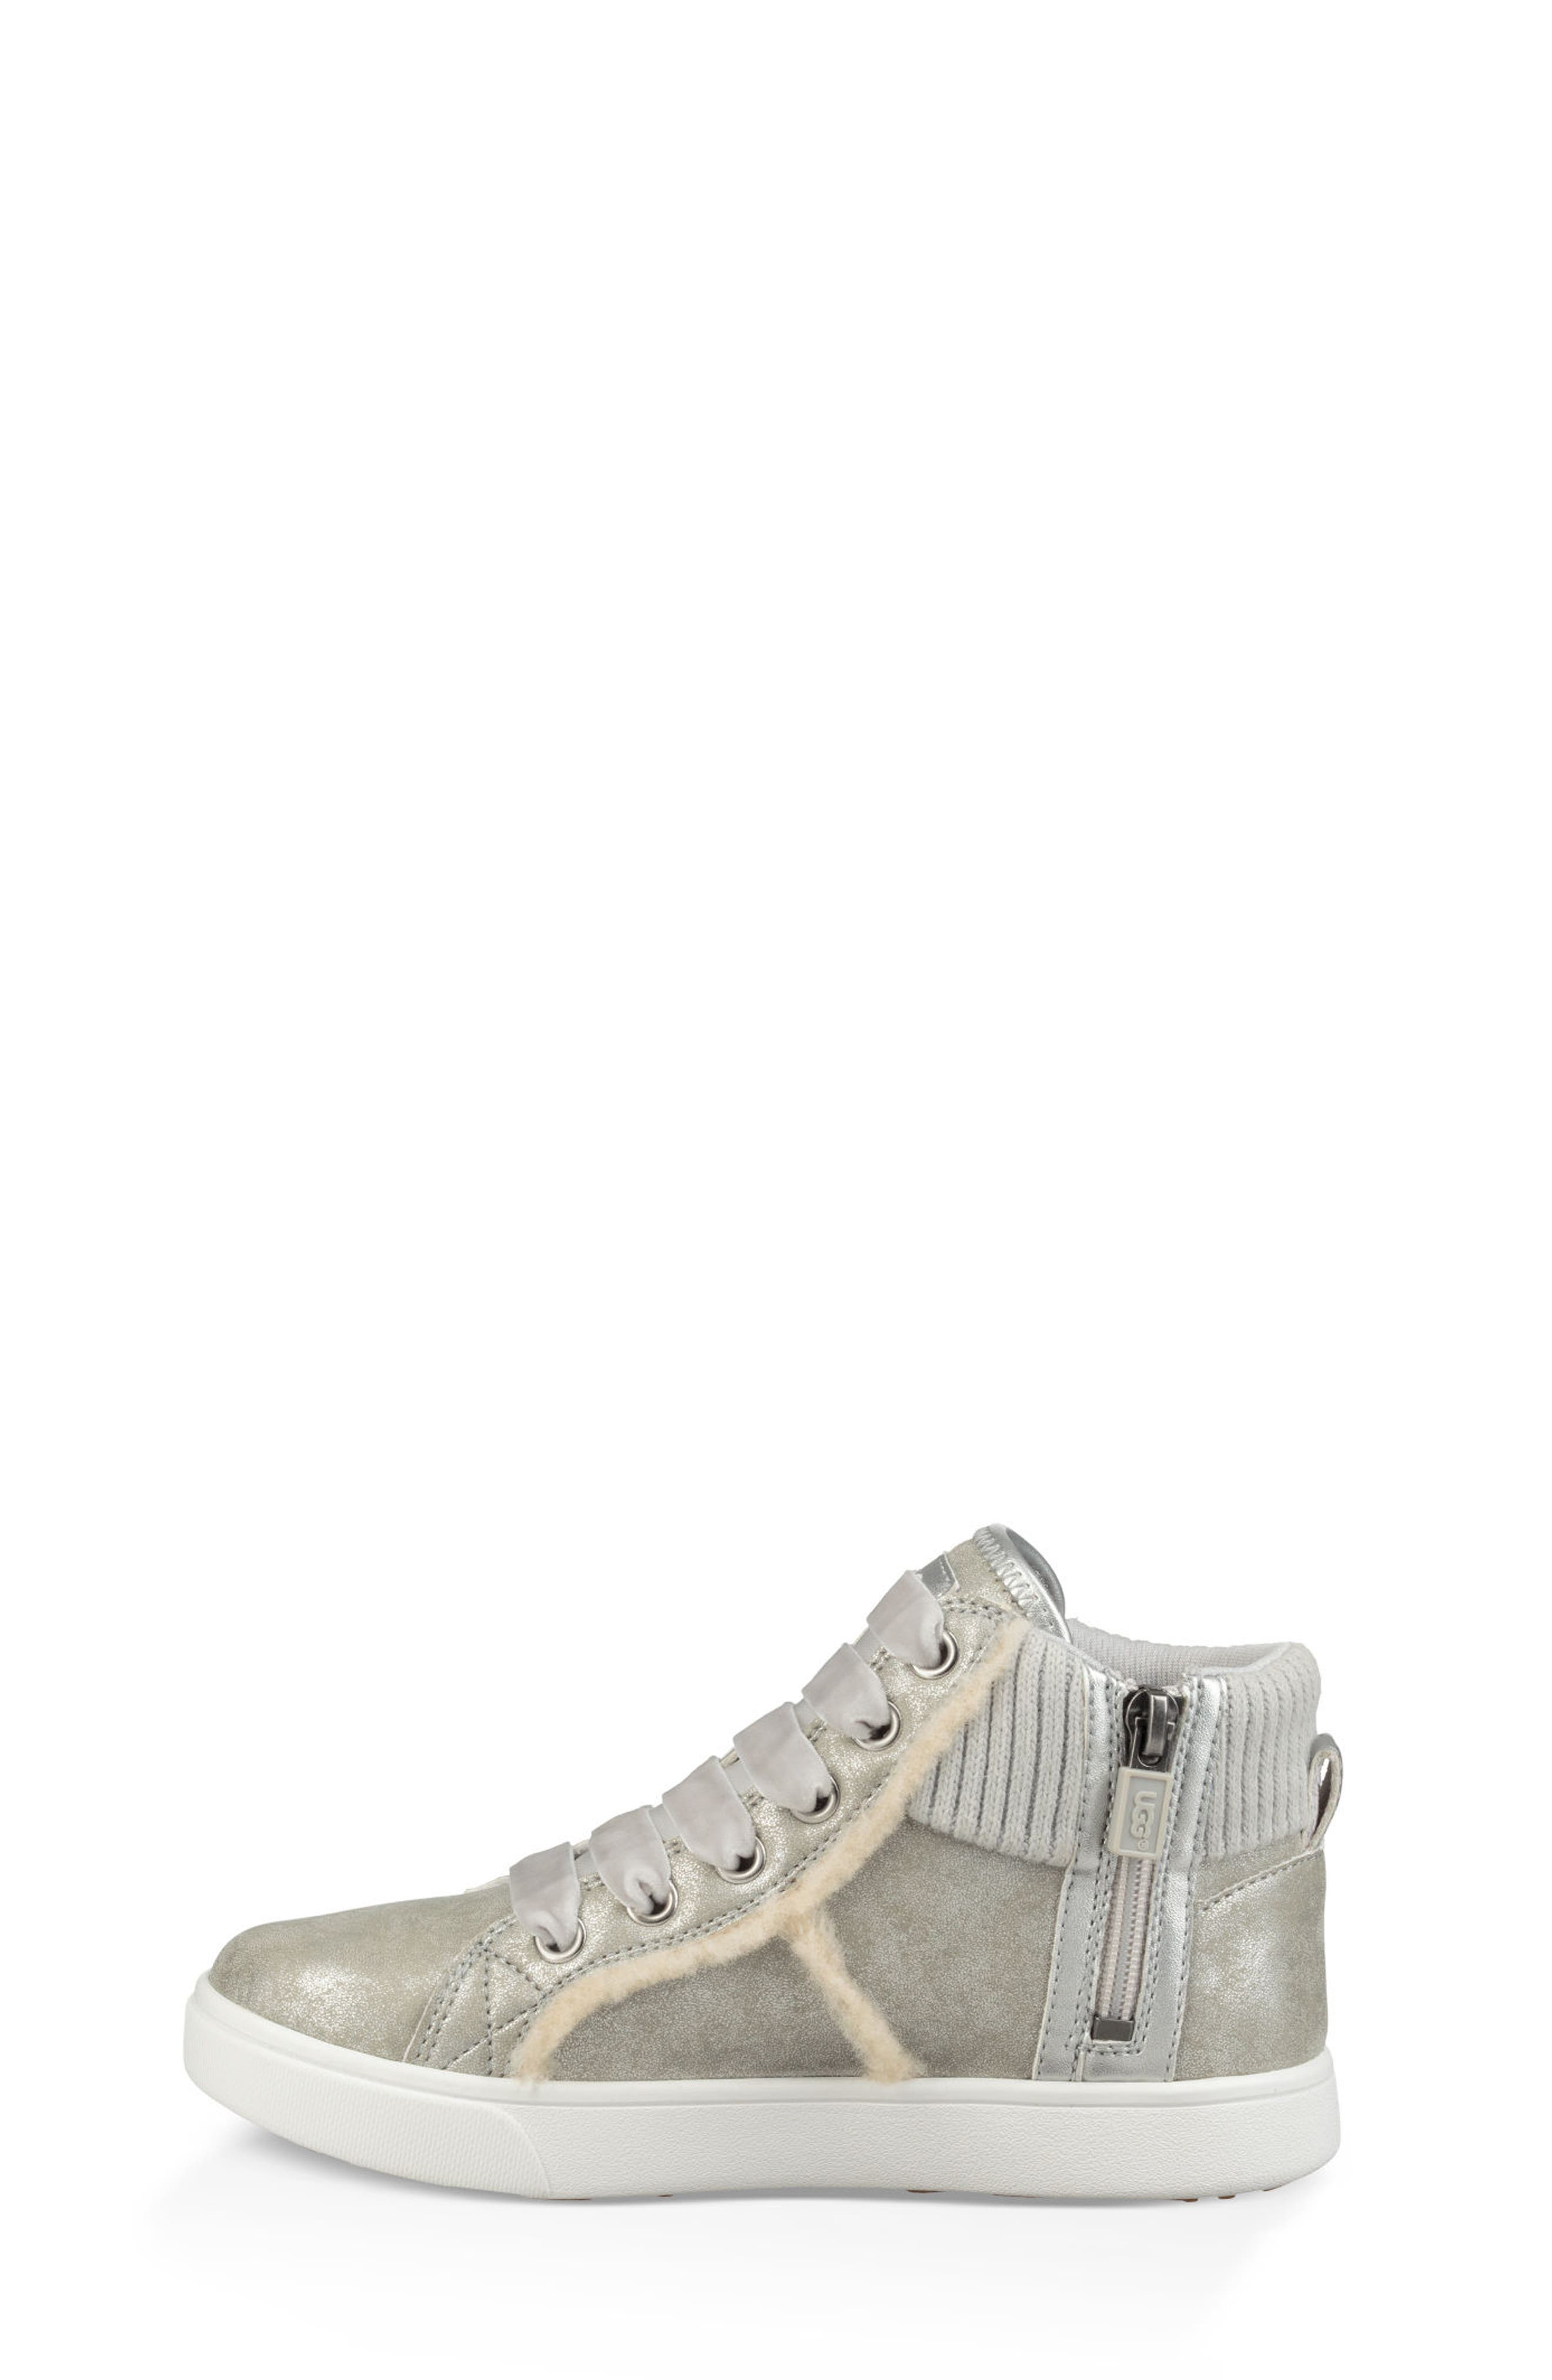 Addie High Top Sneaker,                             Alternate thumbnail 5, color,                             SILVER